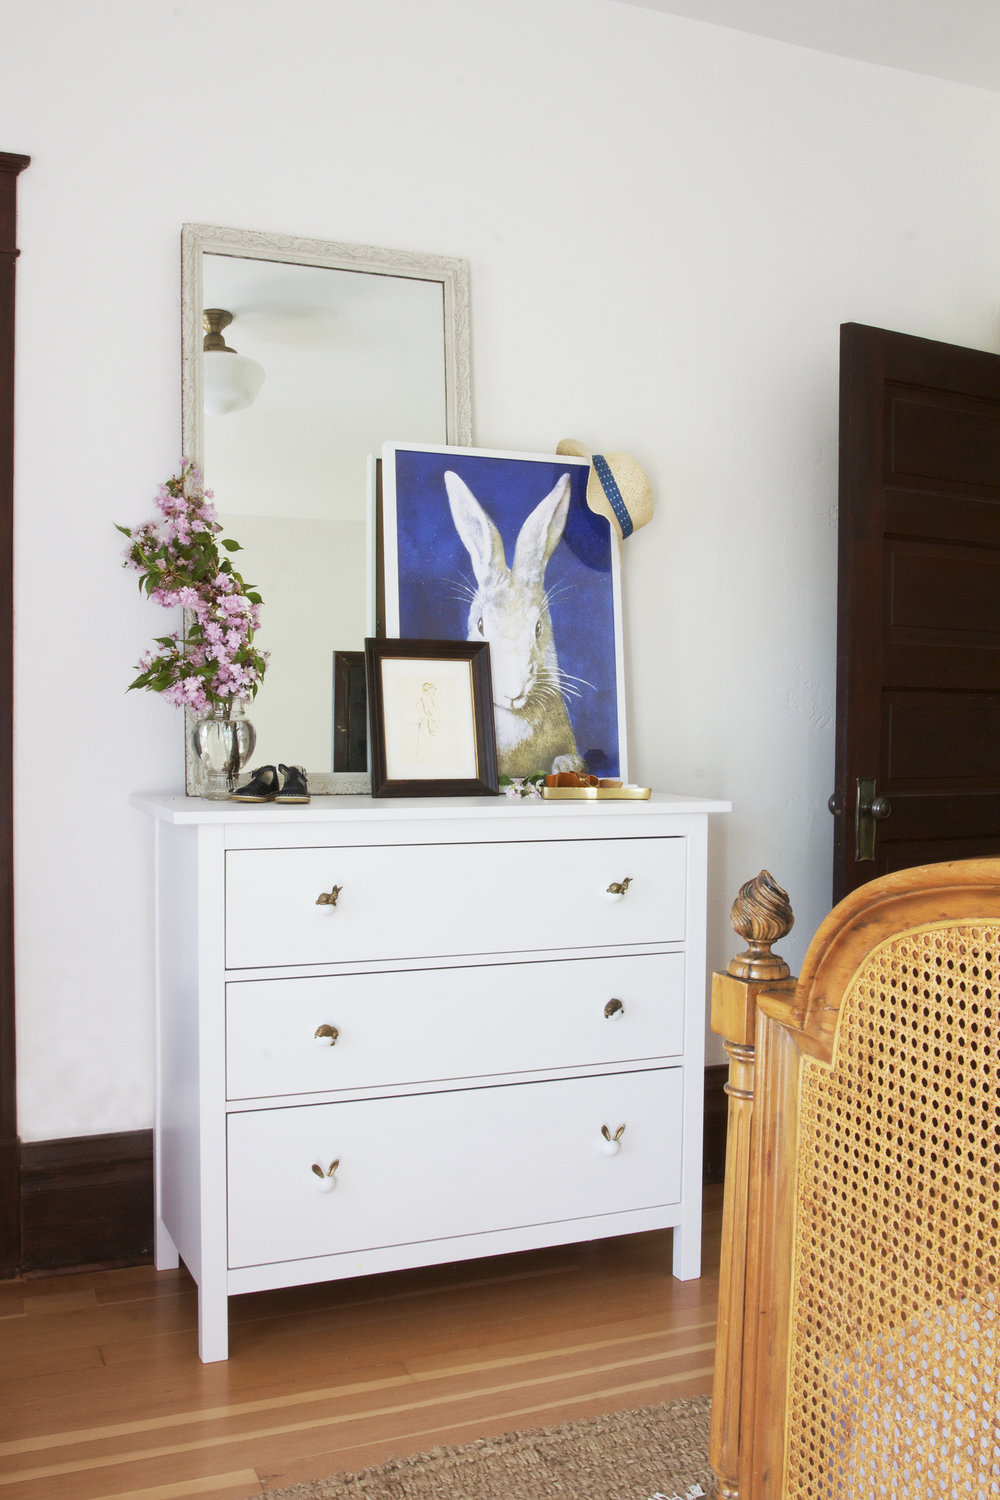 The Grit and Polish - Farmhosue Daphne Nursery Dresser CLEAN.jpg